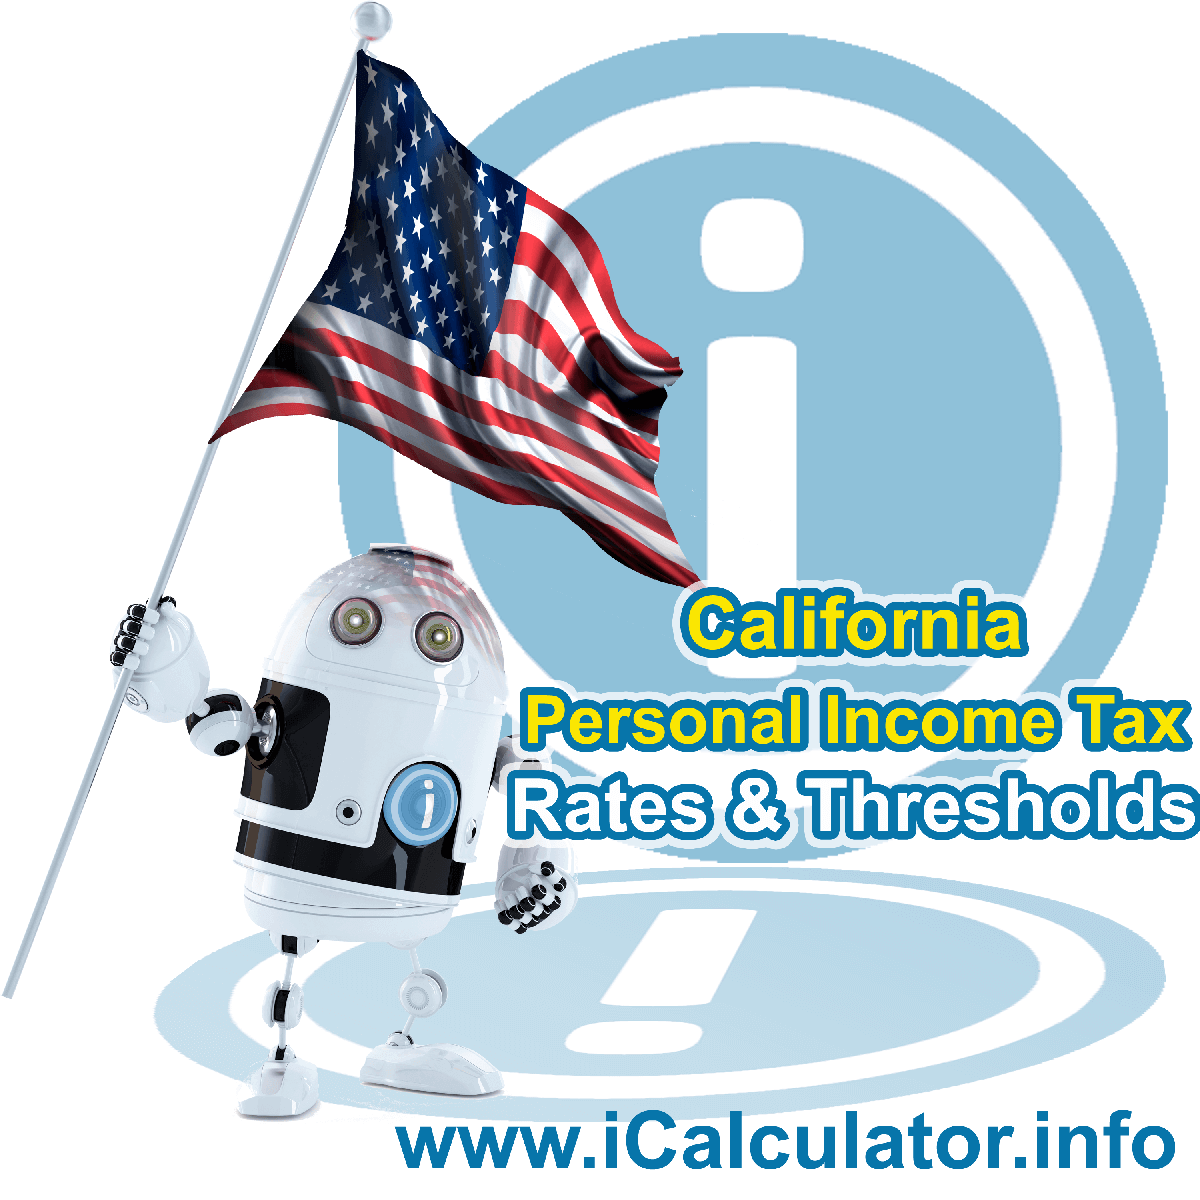 California State Tax Tables 2019. This image displays details of the California State Tax Tables for the 2019 tax return year which is provided in support of the 2019 US Tax Calculator